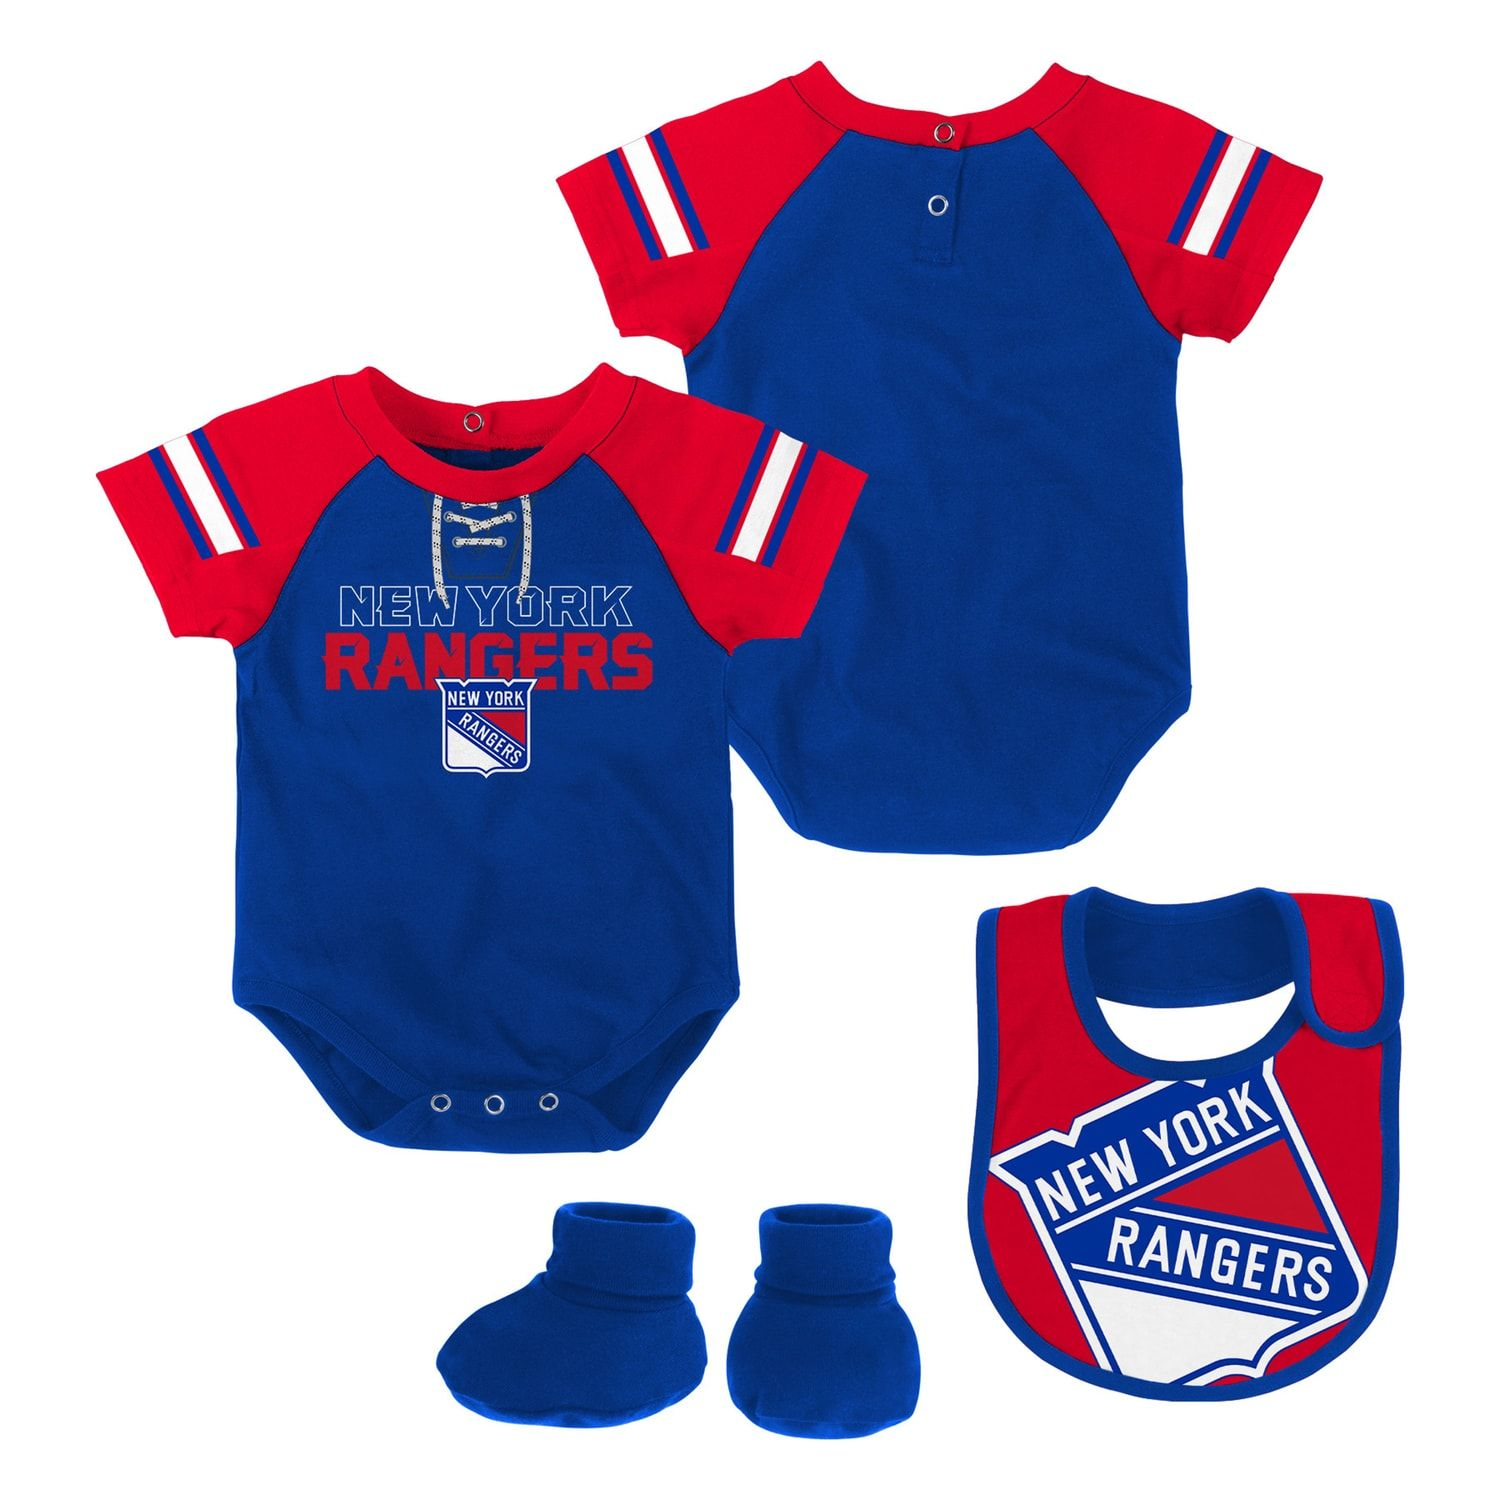 Ice & Roller Hockey Team Sports Nhl New York Rangers Bodysuit Romper Jumpsuit Outfits 3 Piece Set Newborn Kids 2019 New Fashion Style Online